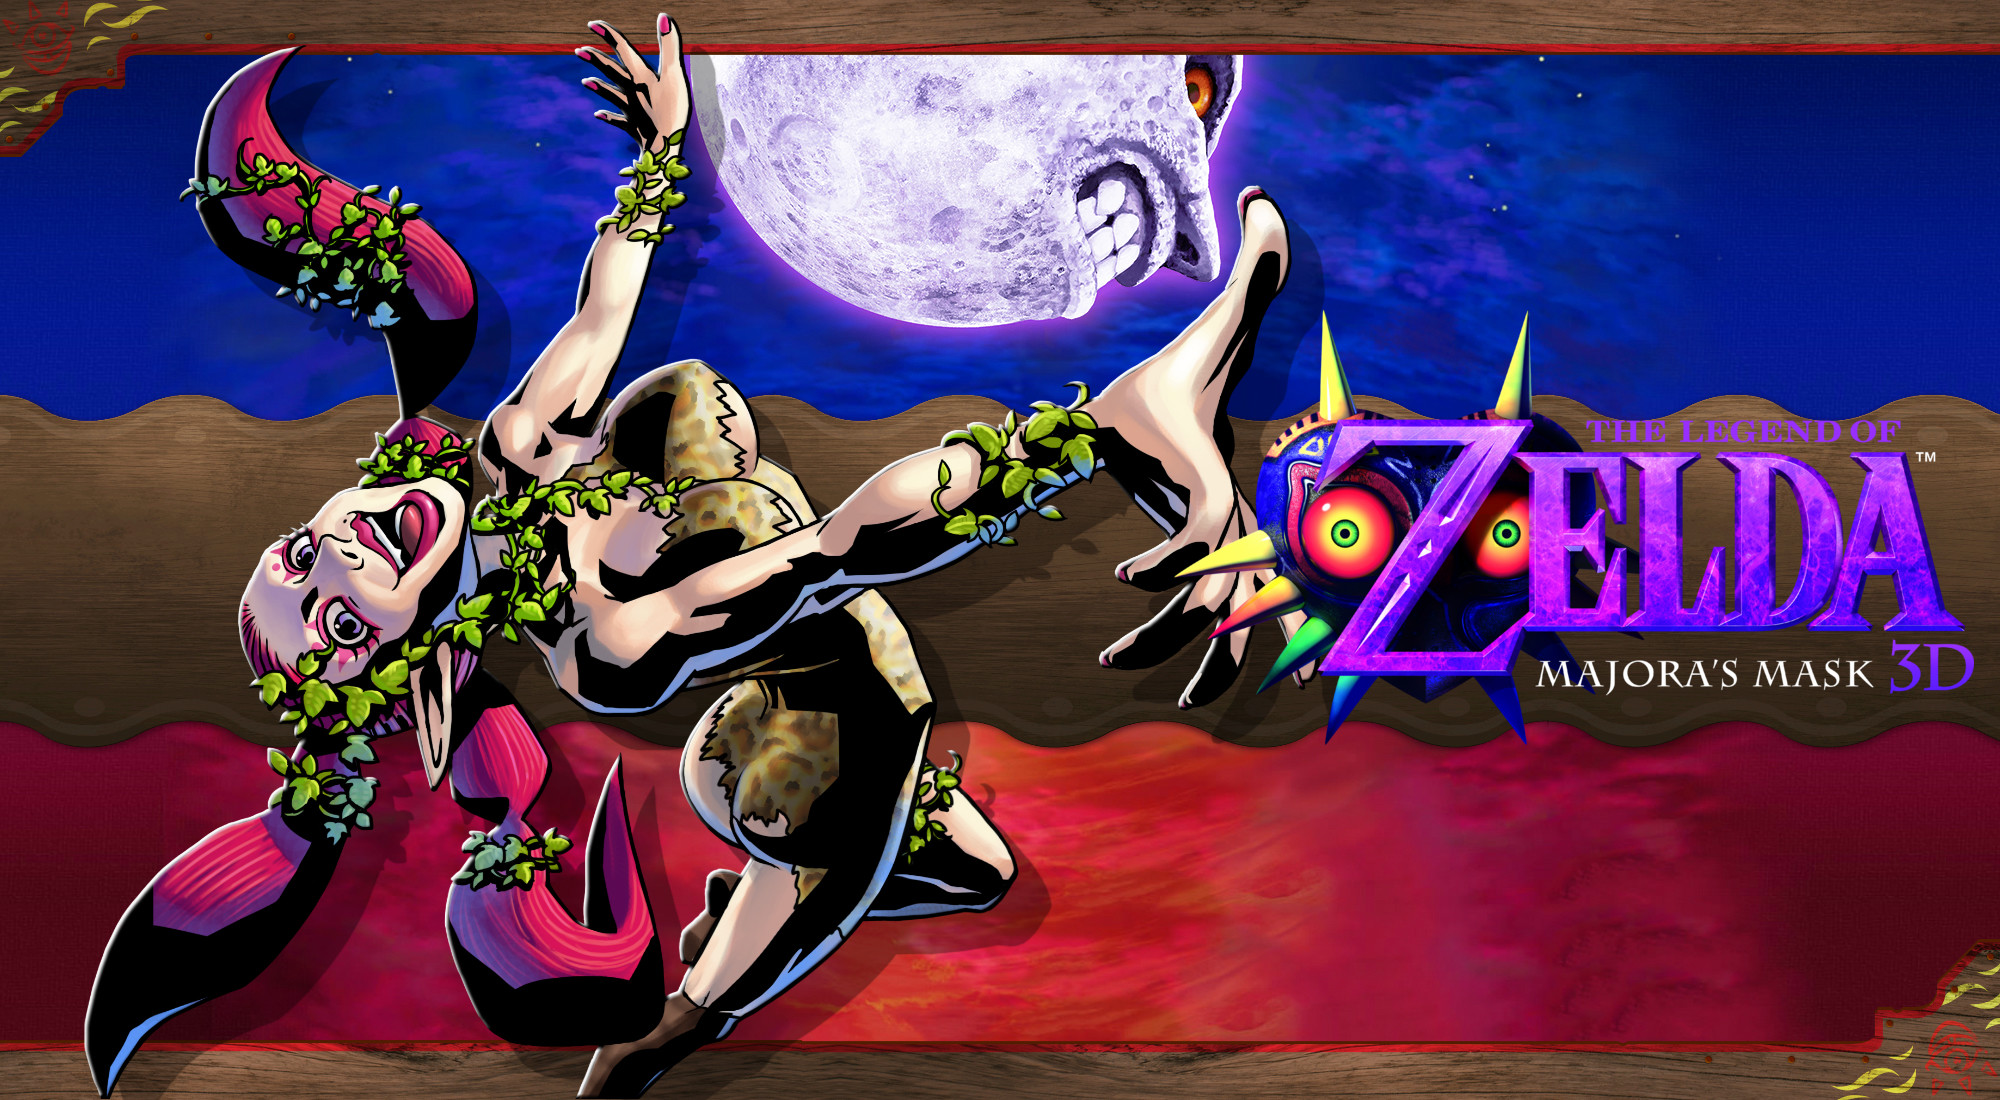 Res: 2000x1100, ... Majora's Mask 3D Wallpaper - Great Fairy by DaKidGaming